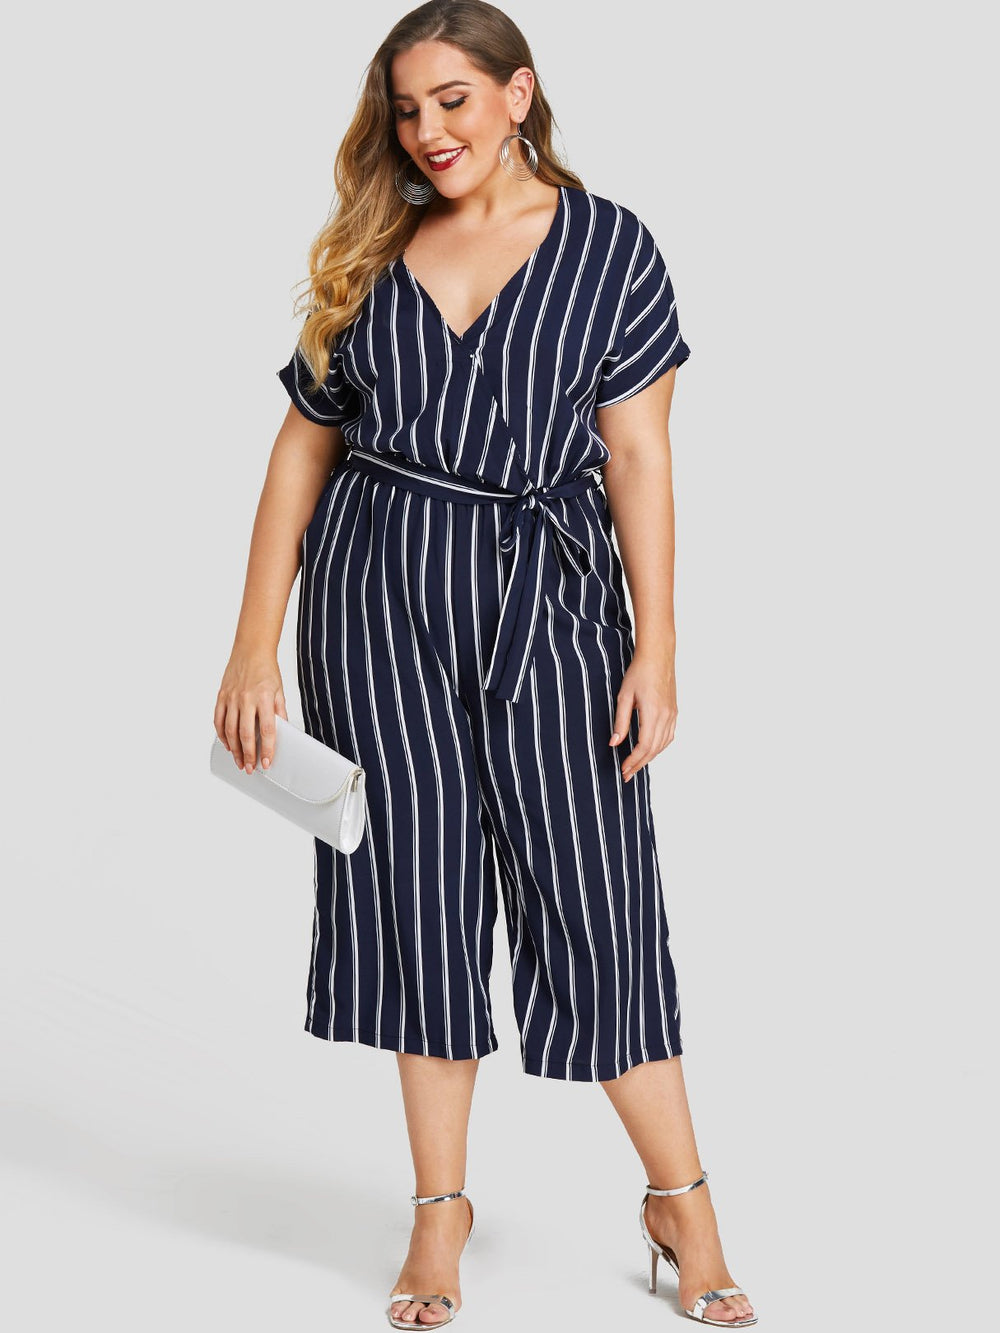 V-Neck Stripe Self-Tie Short Sleeve Navy Plus Size Bottoms